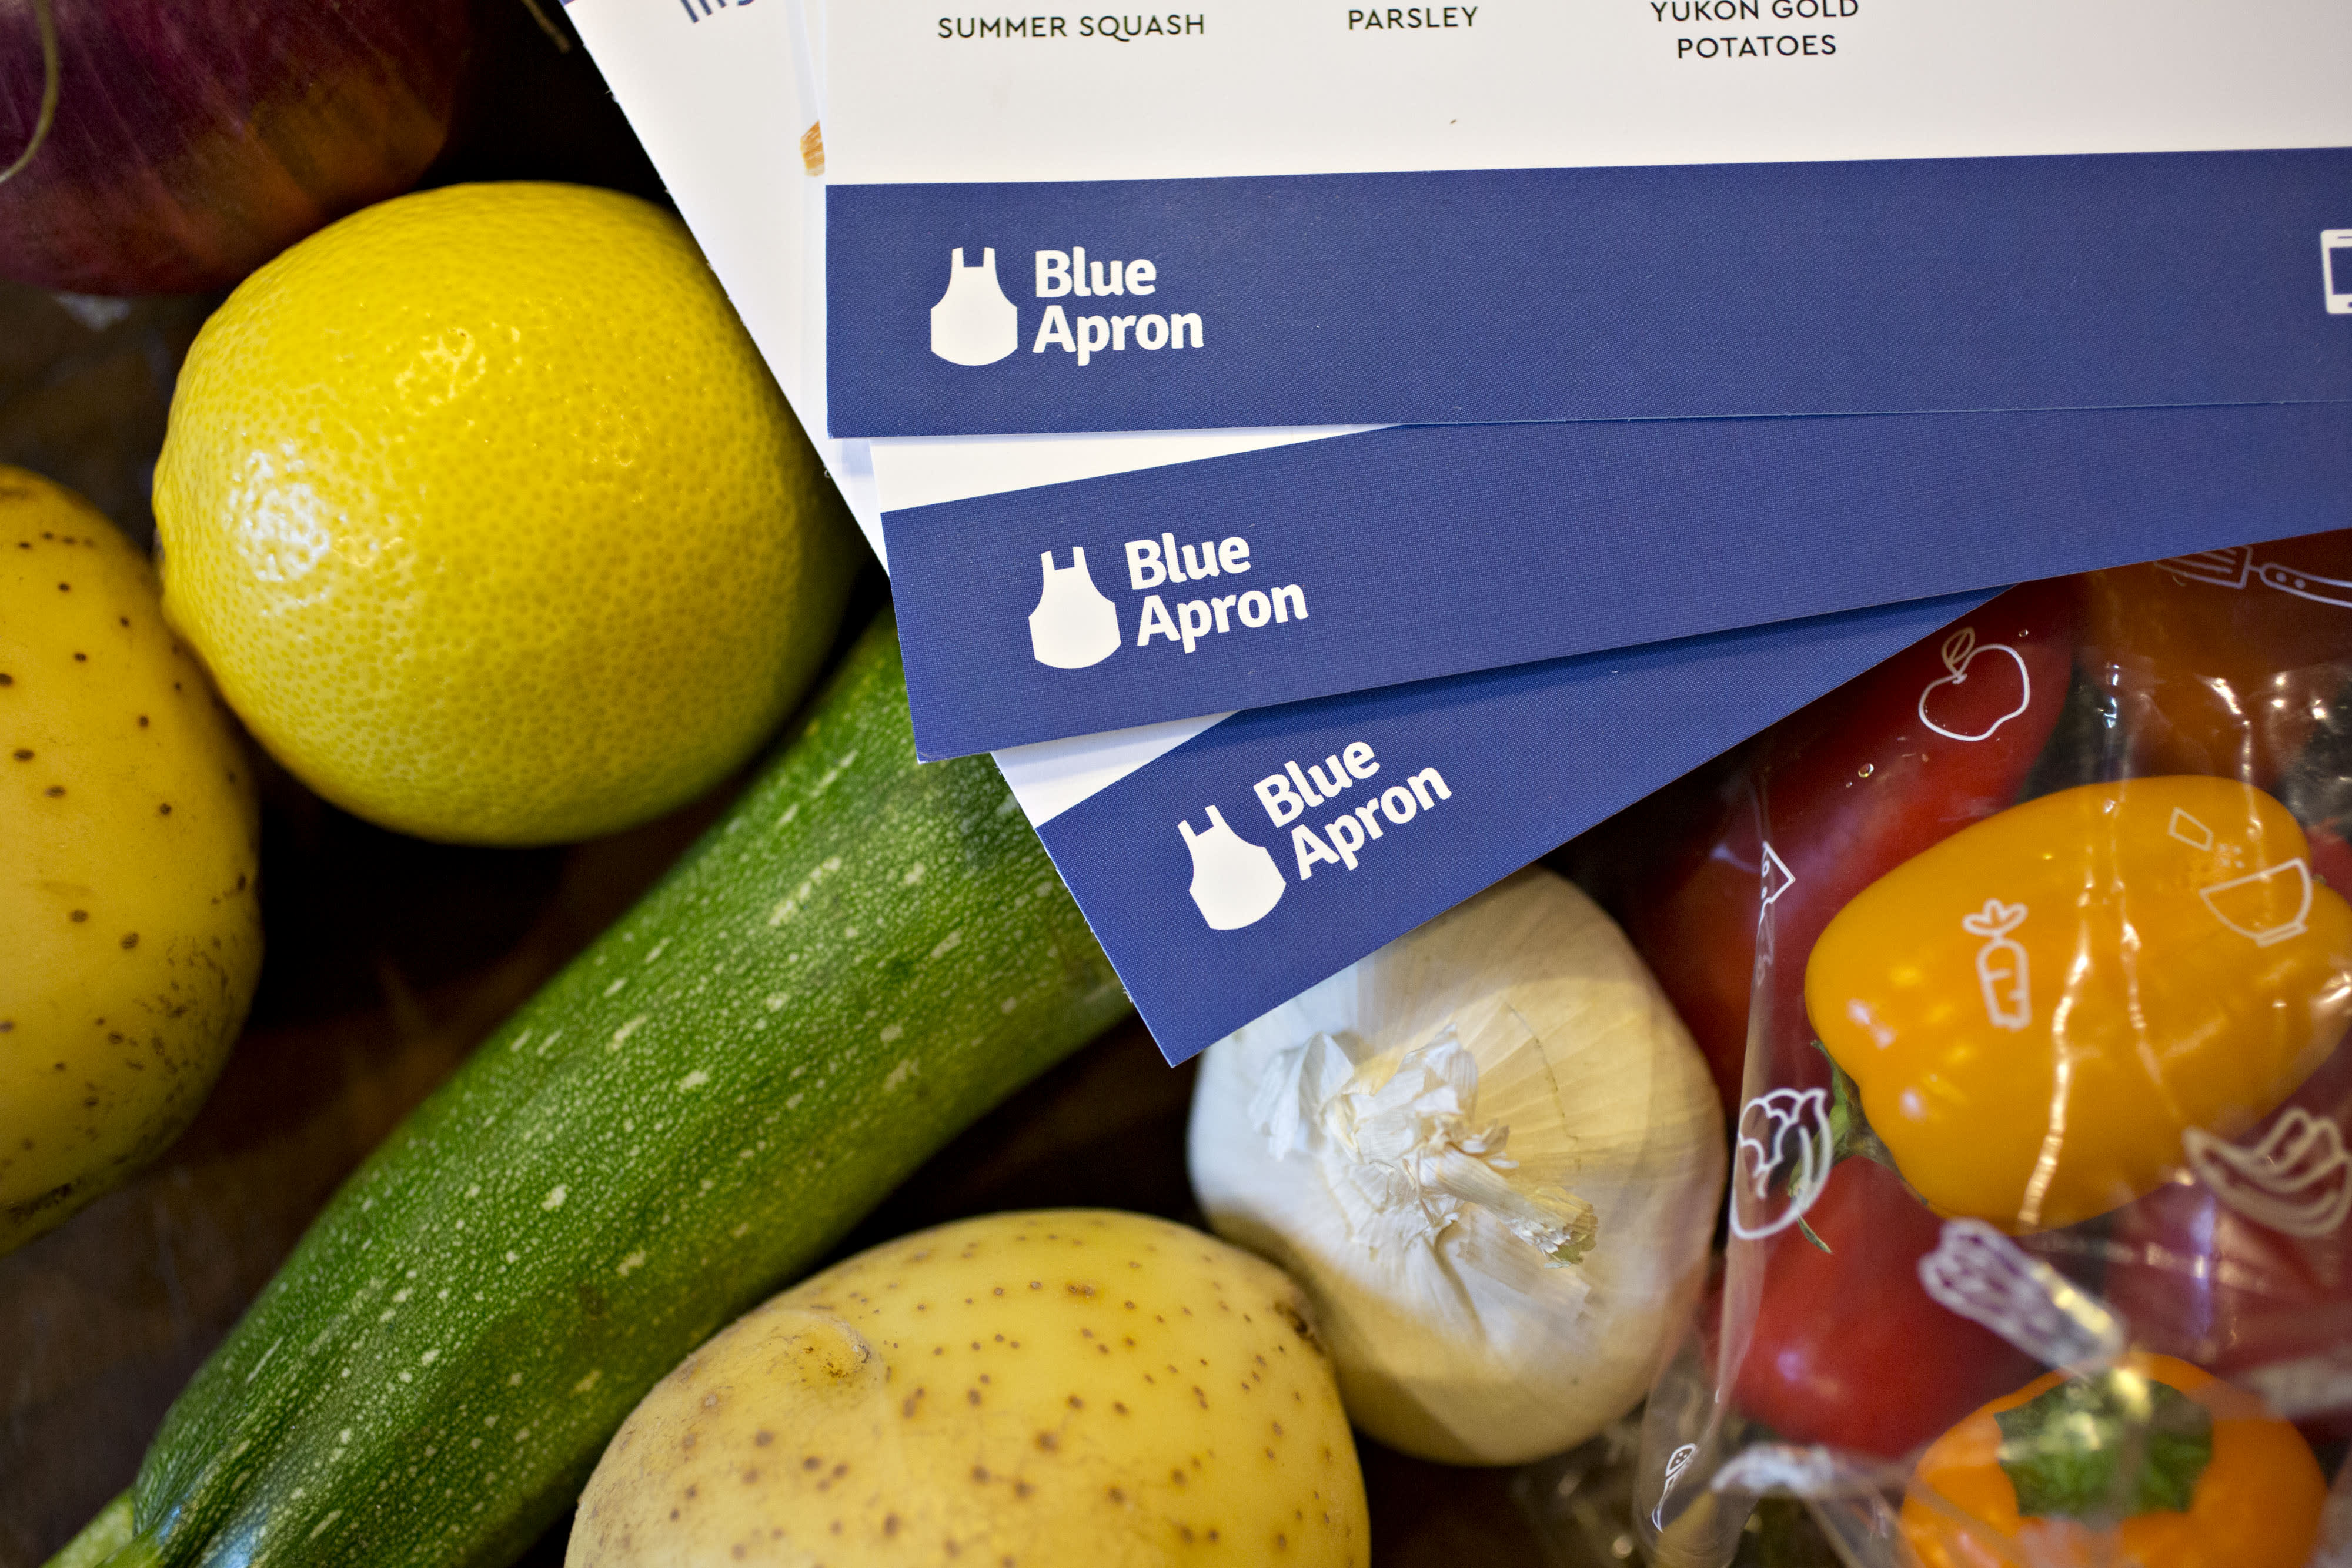 Blue apron investors